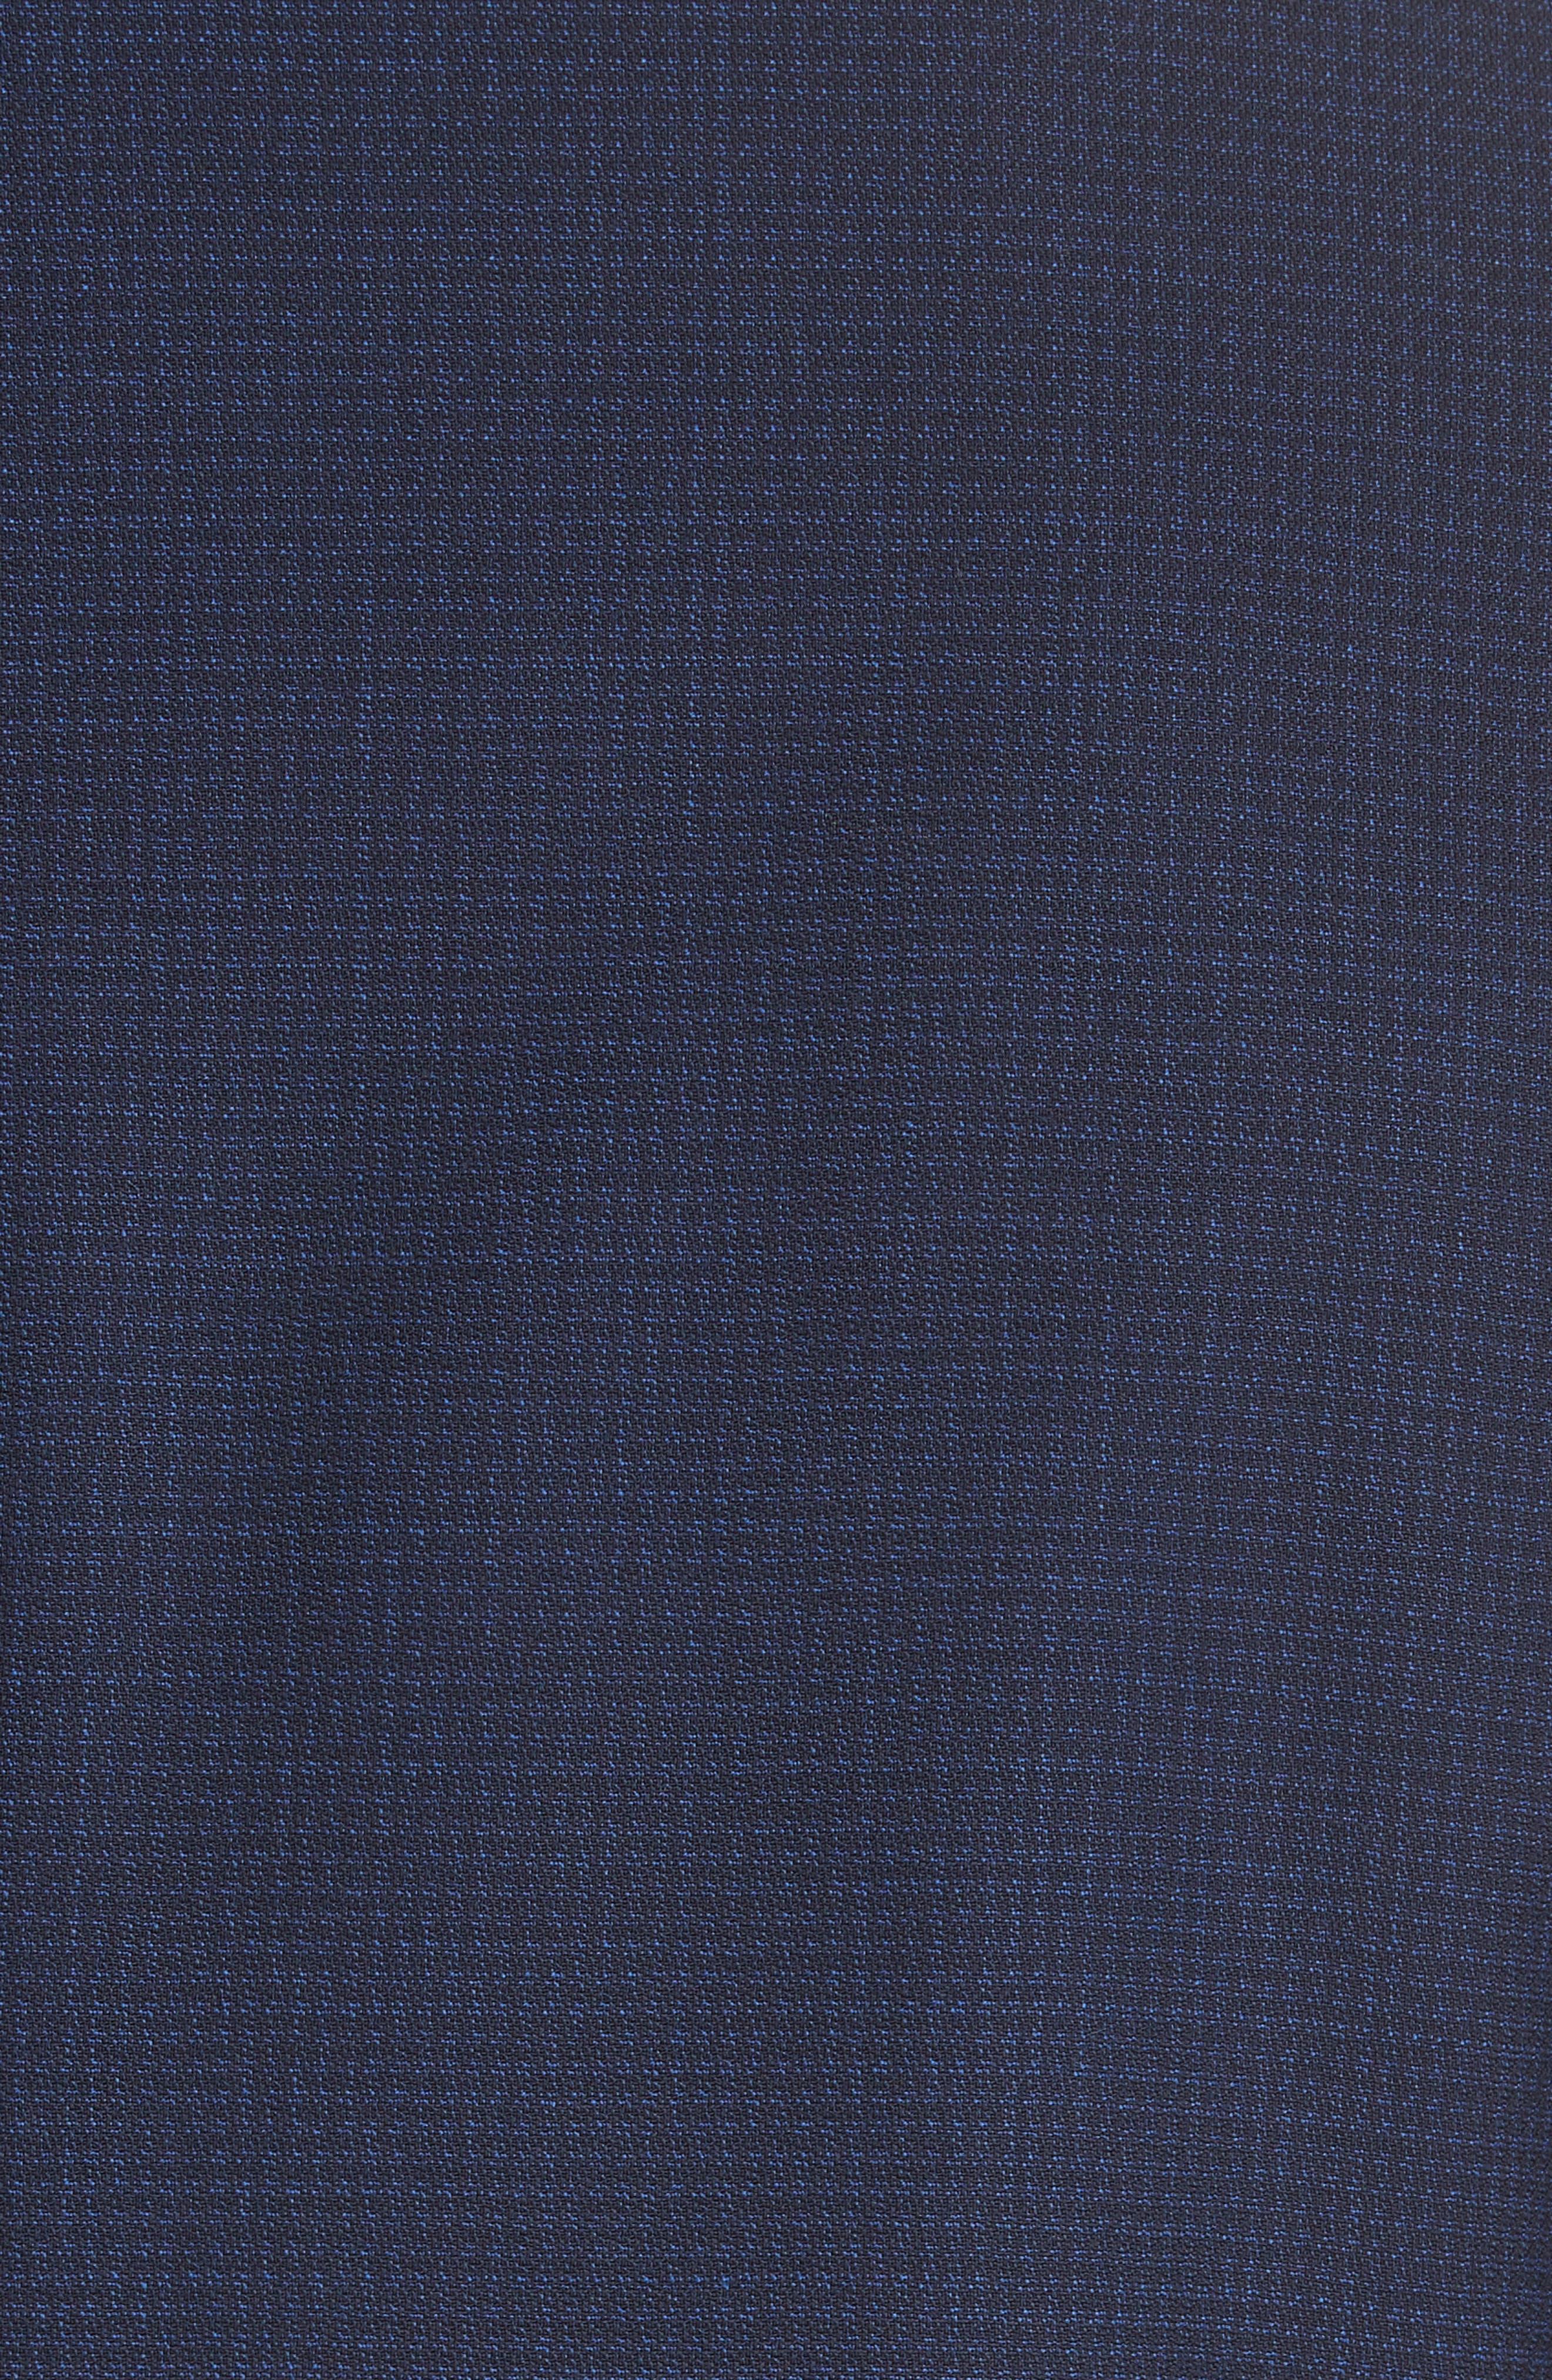 CANALI,                             Classic Fit Check Wool Suit,                             Alternate thumbnail 6, color,                             400